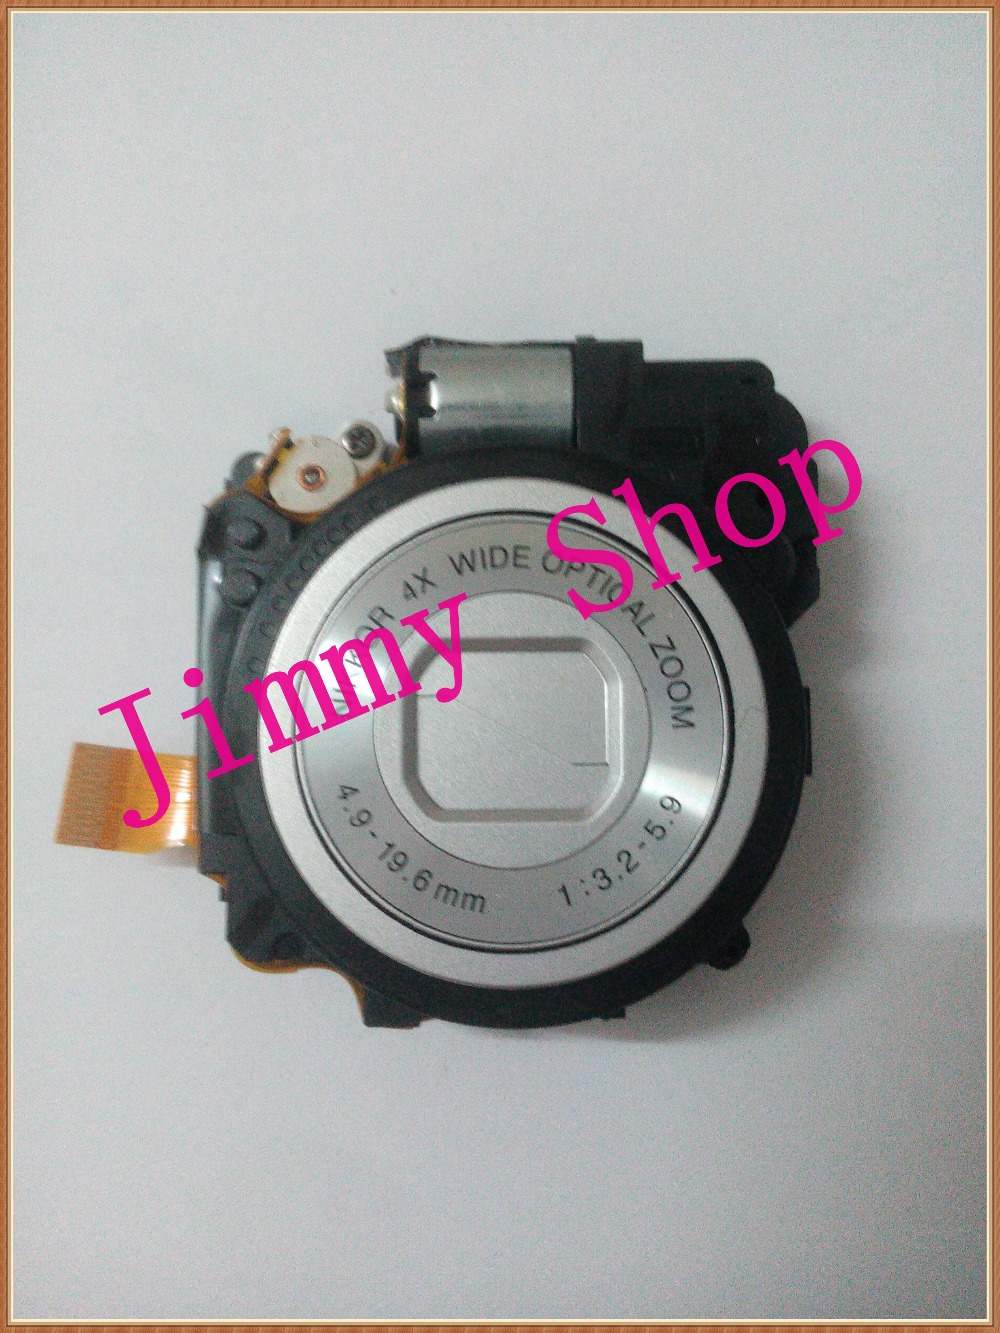 FREE SHIPPING! Digital Camera Replacement Repair Parts For Nikon Coolpix S3000 S4000 S2500 Lens Zoom Unit